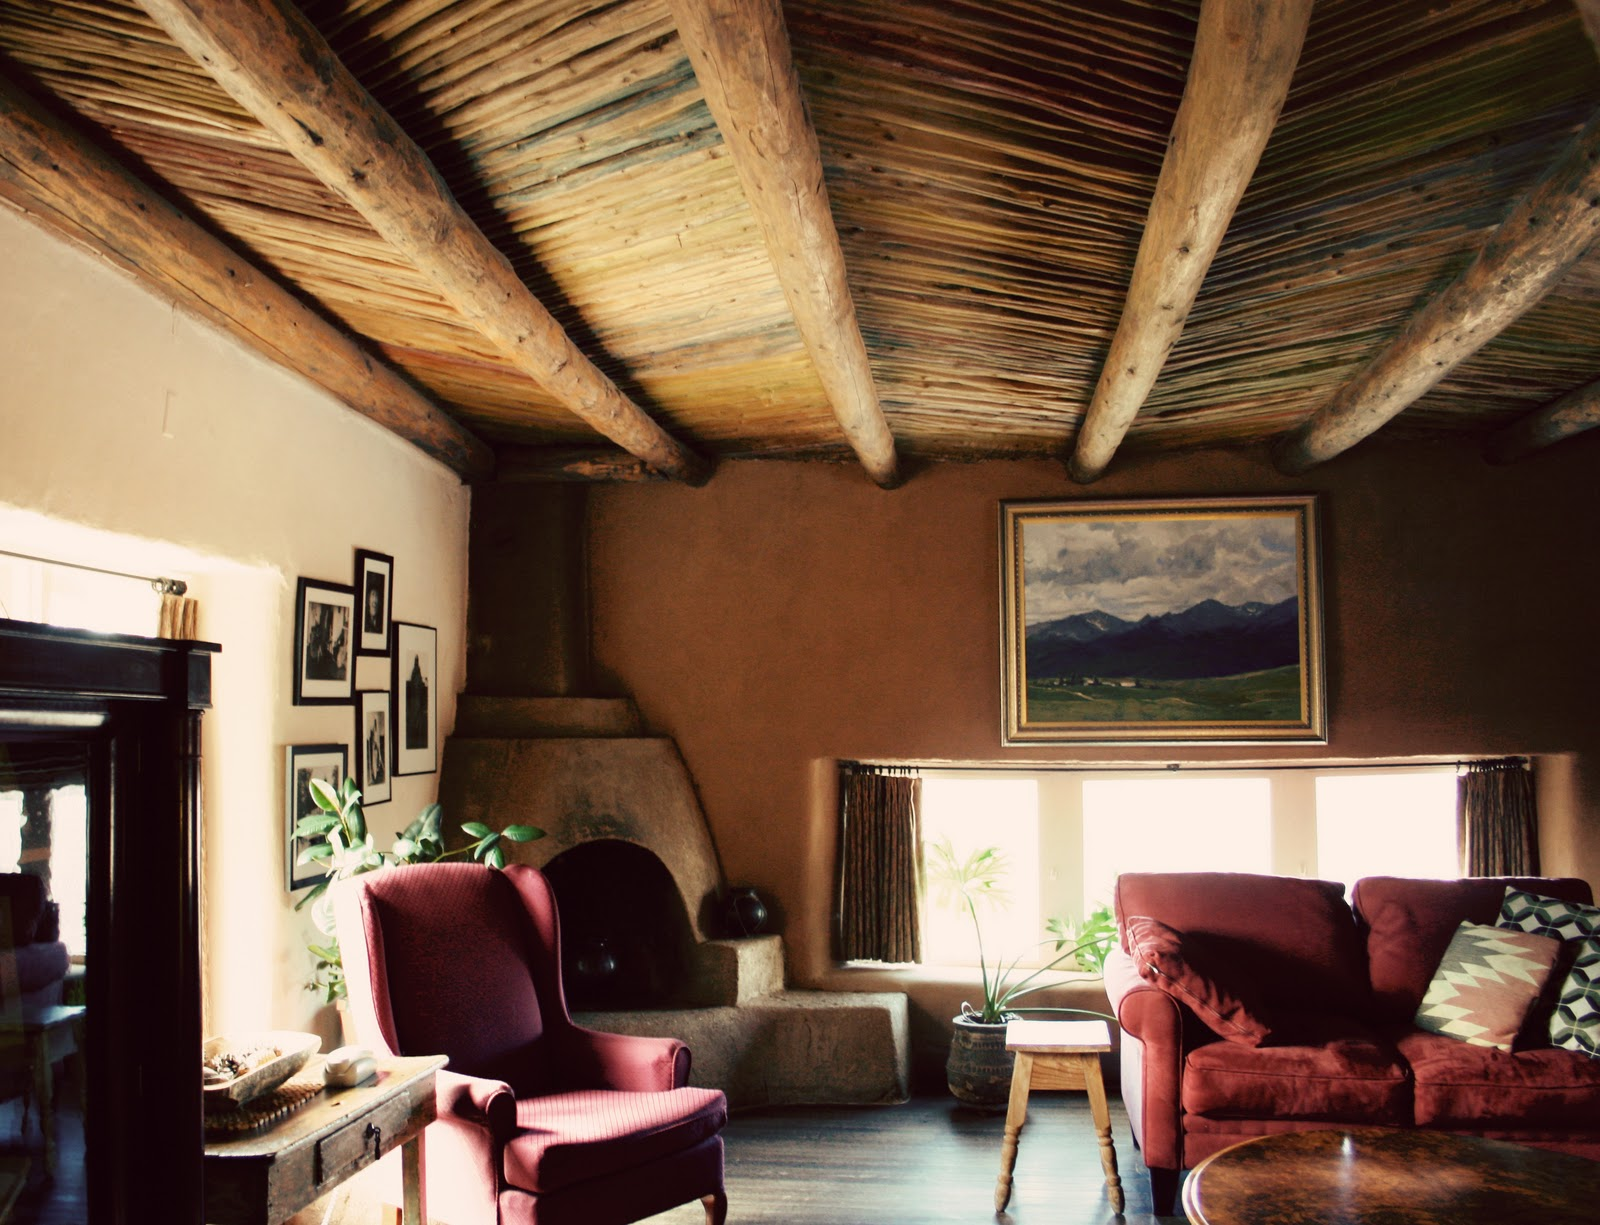 mabel dodge luhan house sitting room. Cars Review. Best American Auto & Cars Review